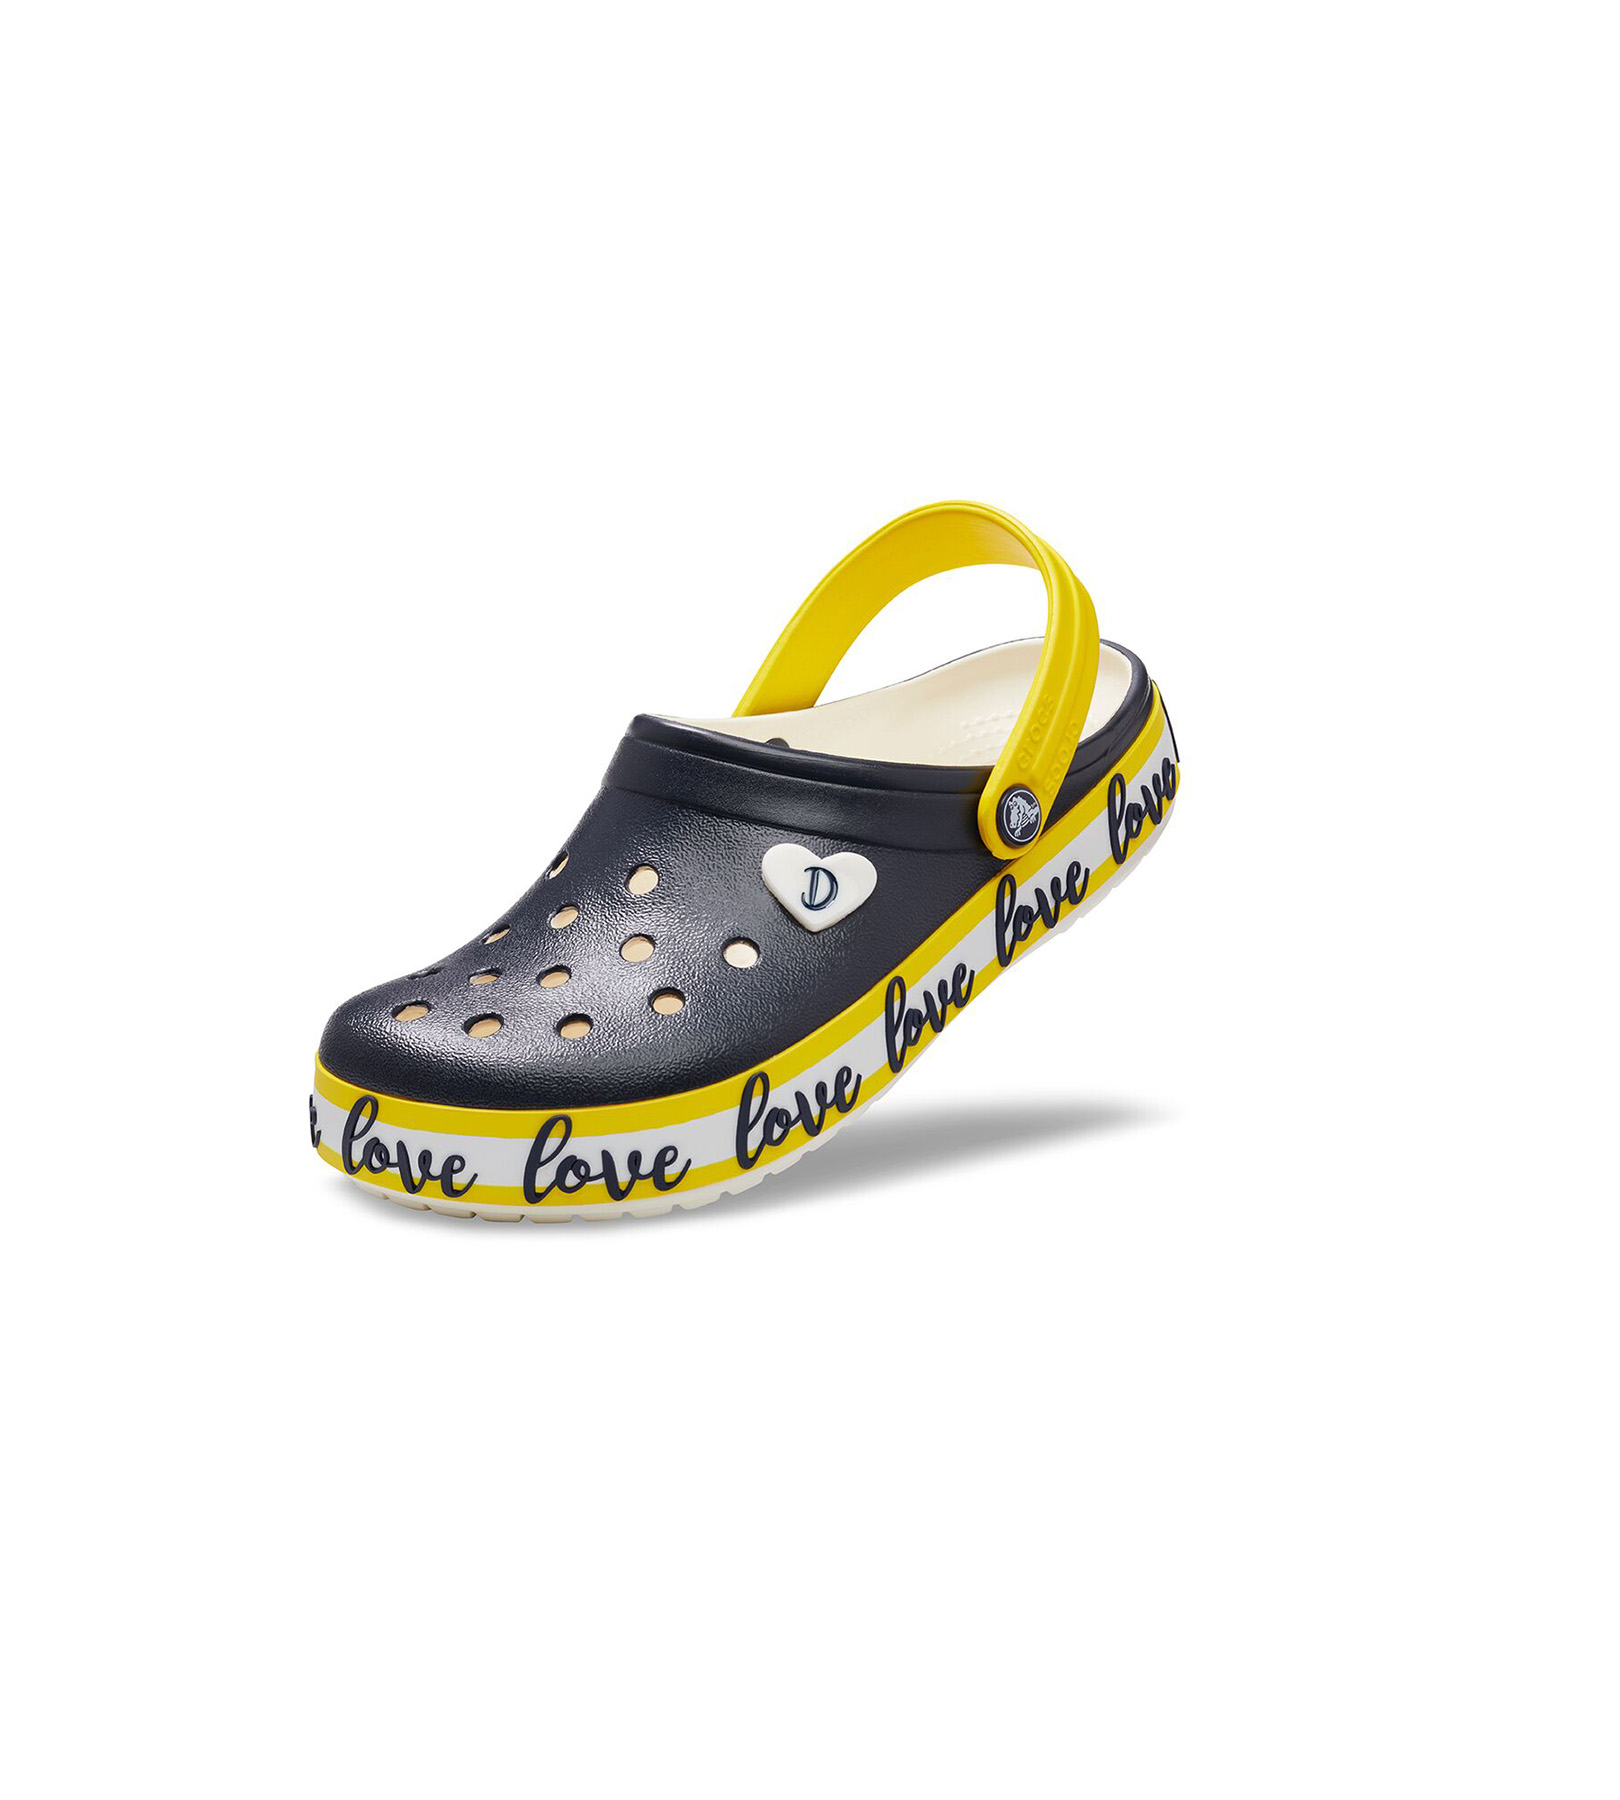 Drew Barrymore Crocs Collaboration